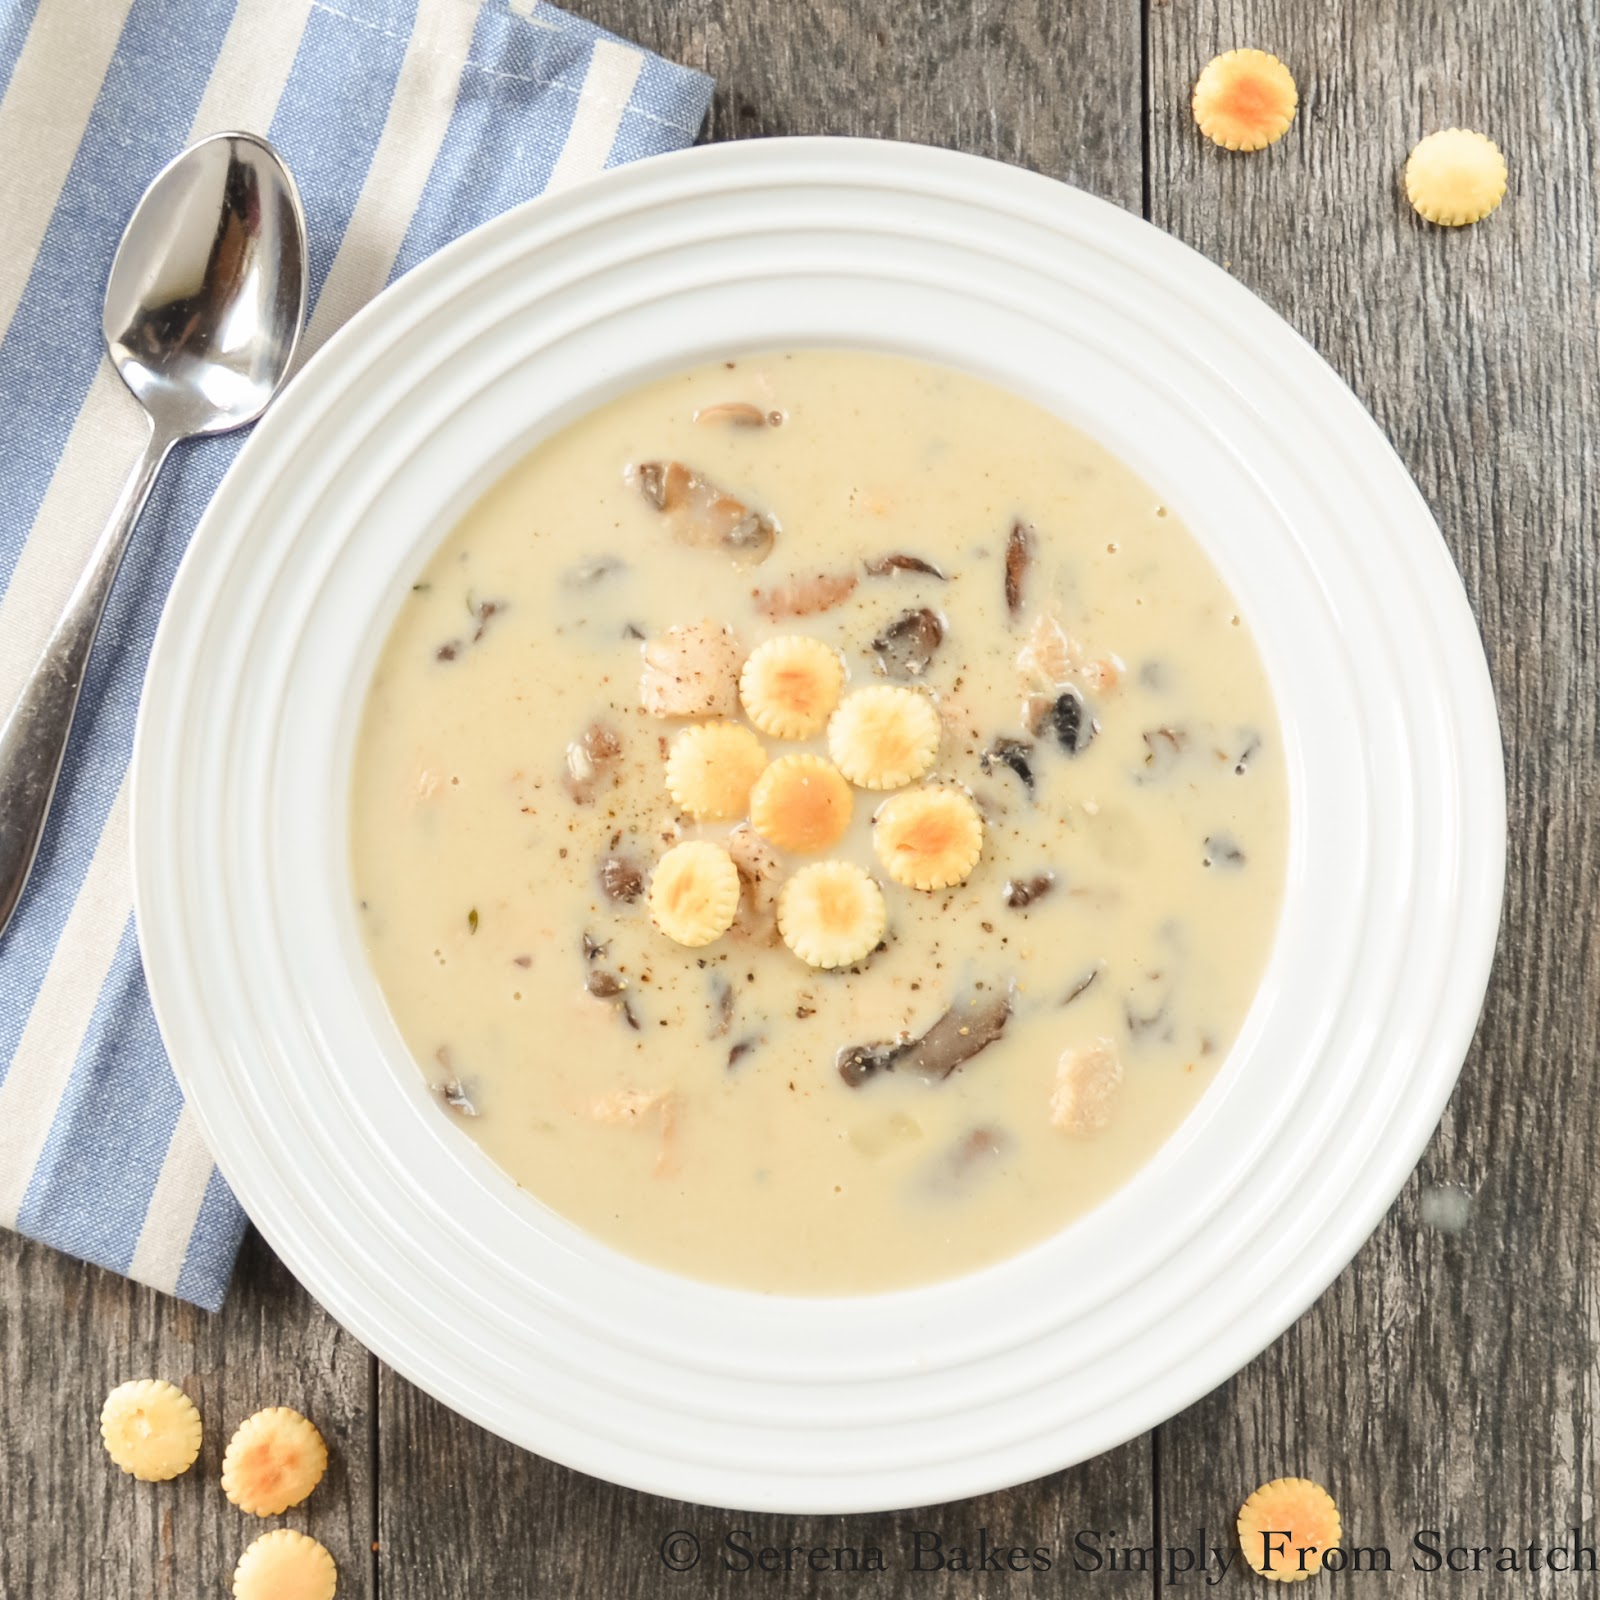 Creamy Chicken and Mushroom Soup the perfect comfort food on a cold day!